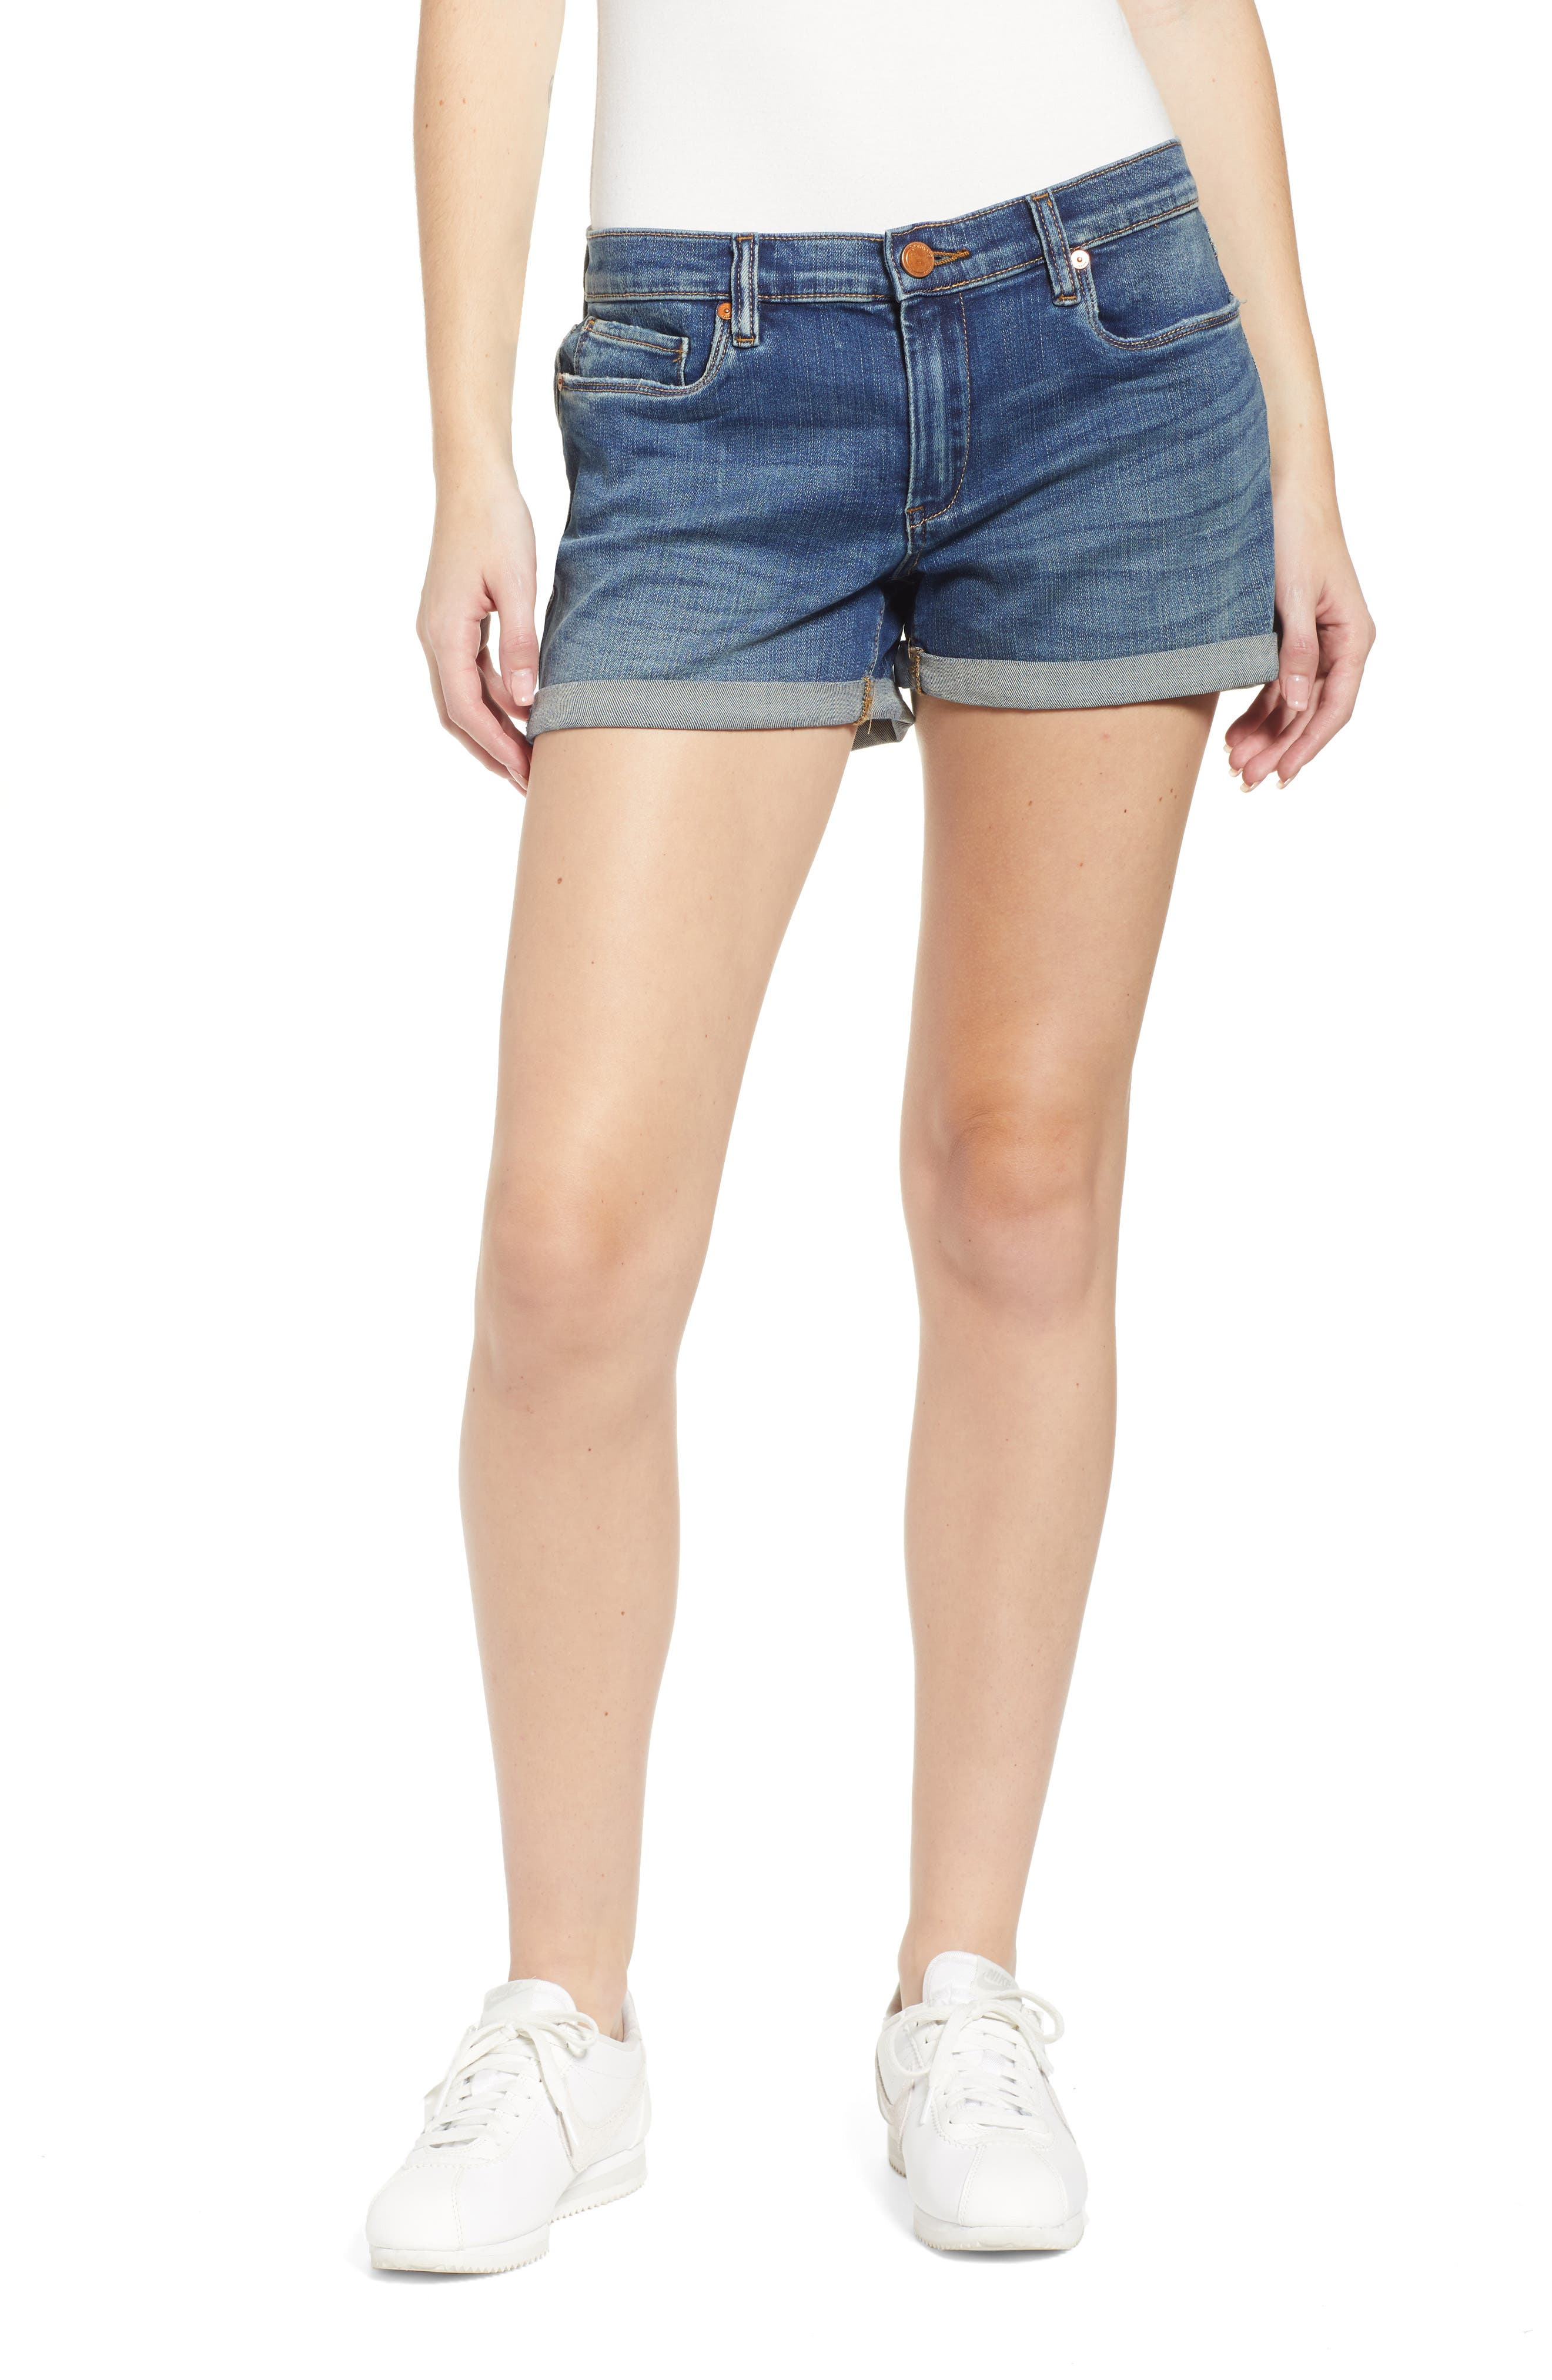 Fulton Cuff Denim Short by Blanknyc